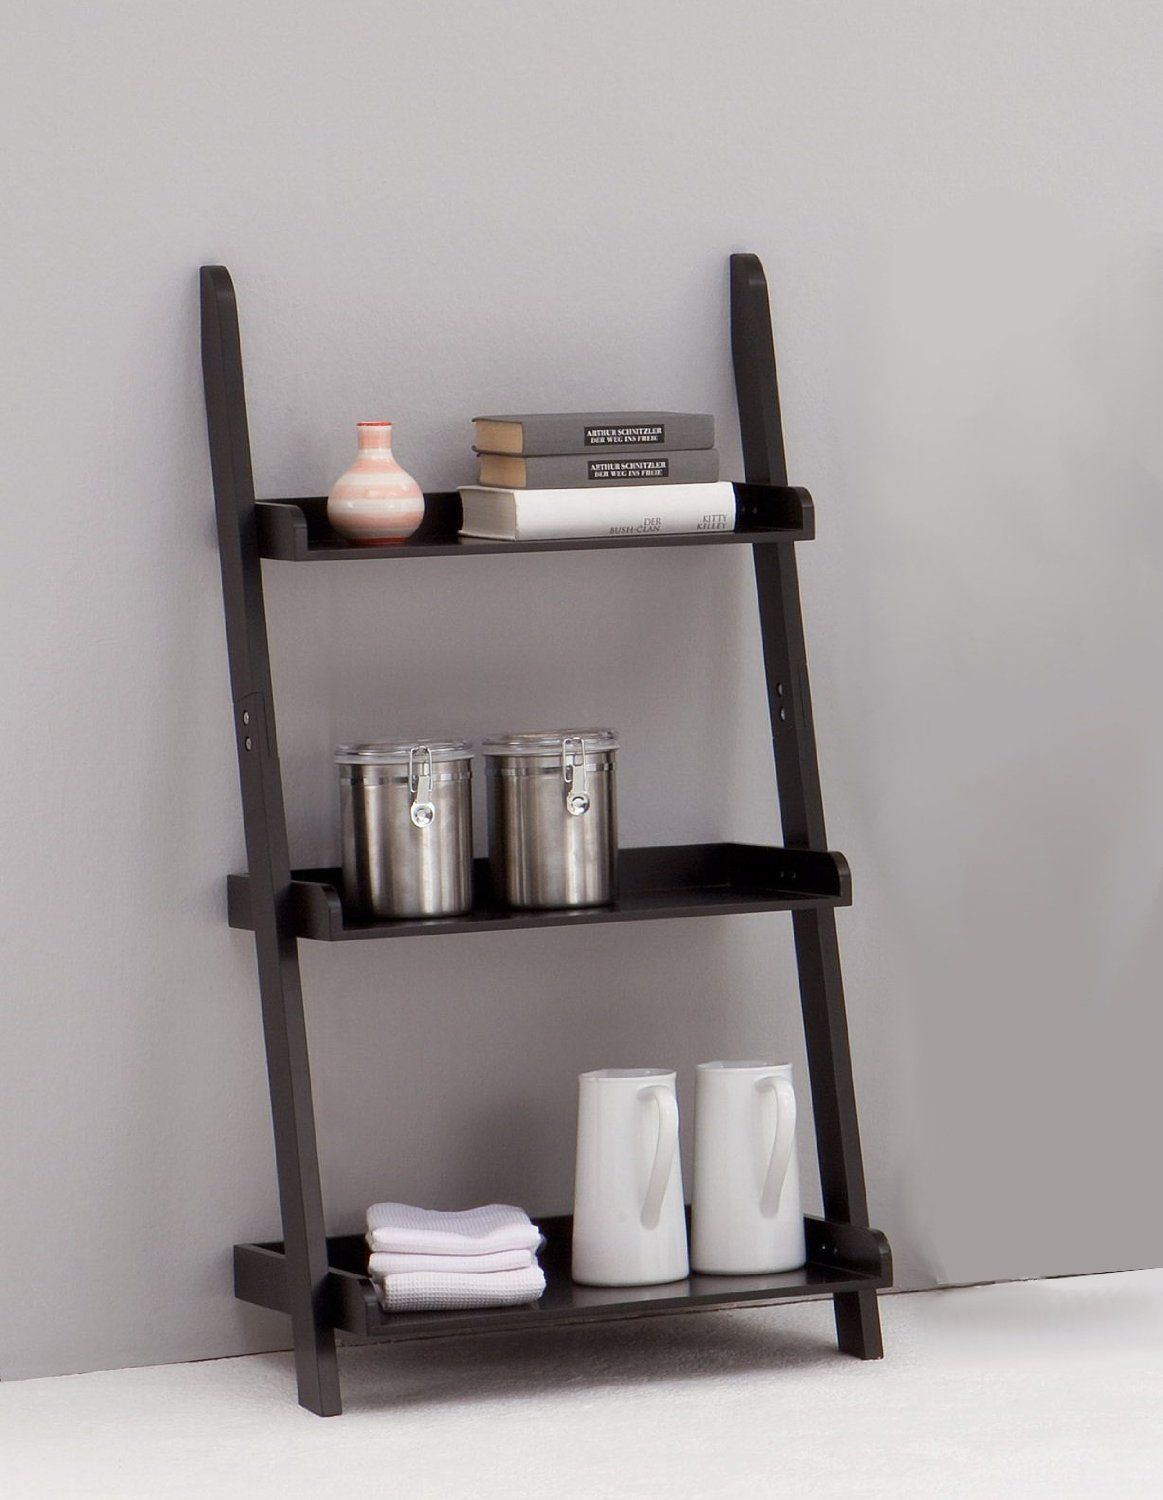 Leitern Black 3-tiered Ladder Shelf Bookcase Display Unit